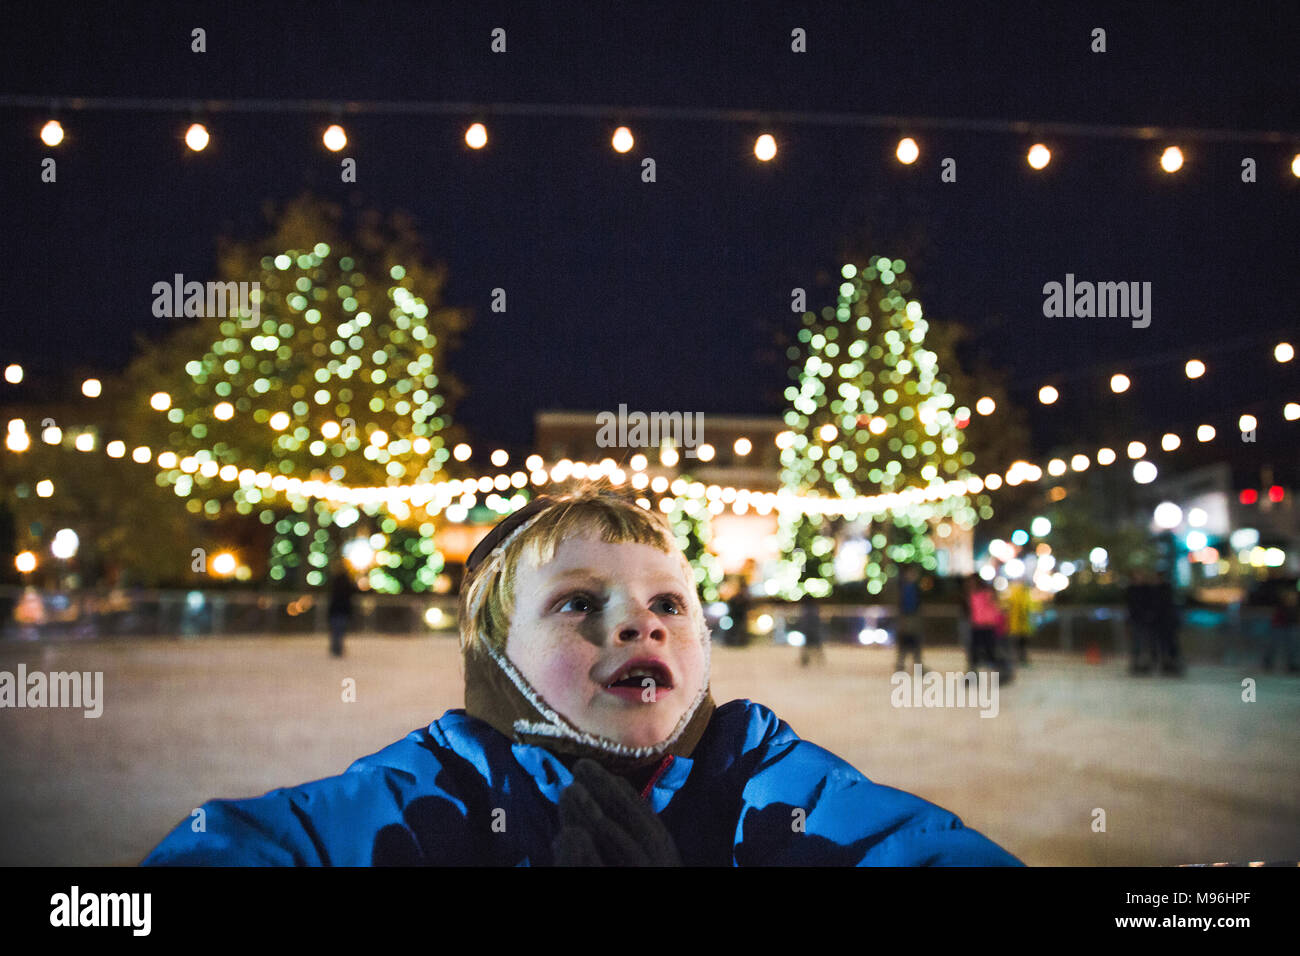 Boy looking up in wonder whilst on skating rink - Stock Image